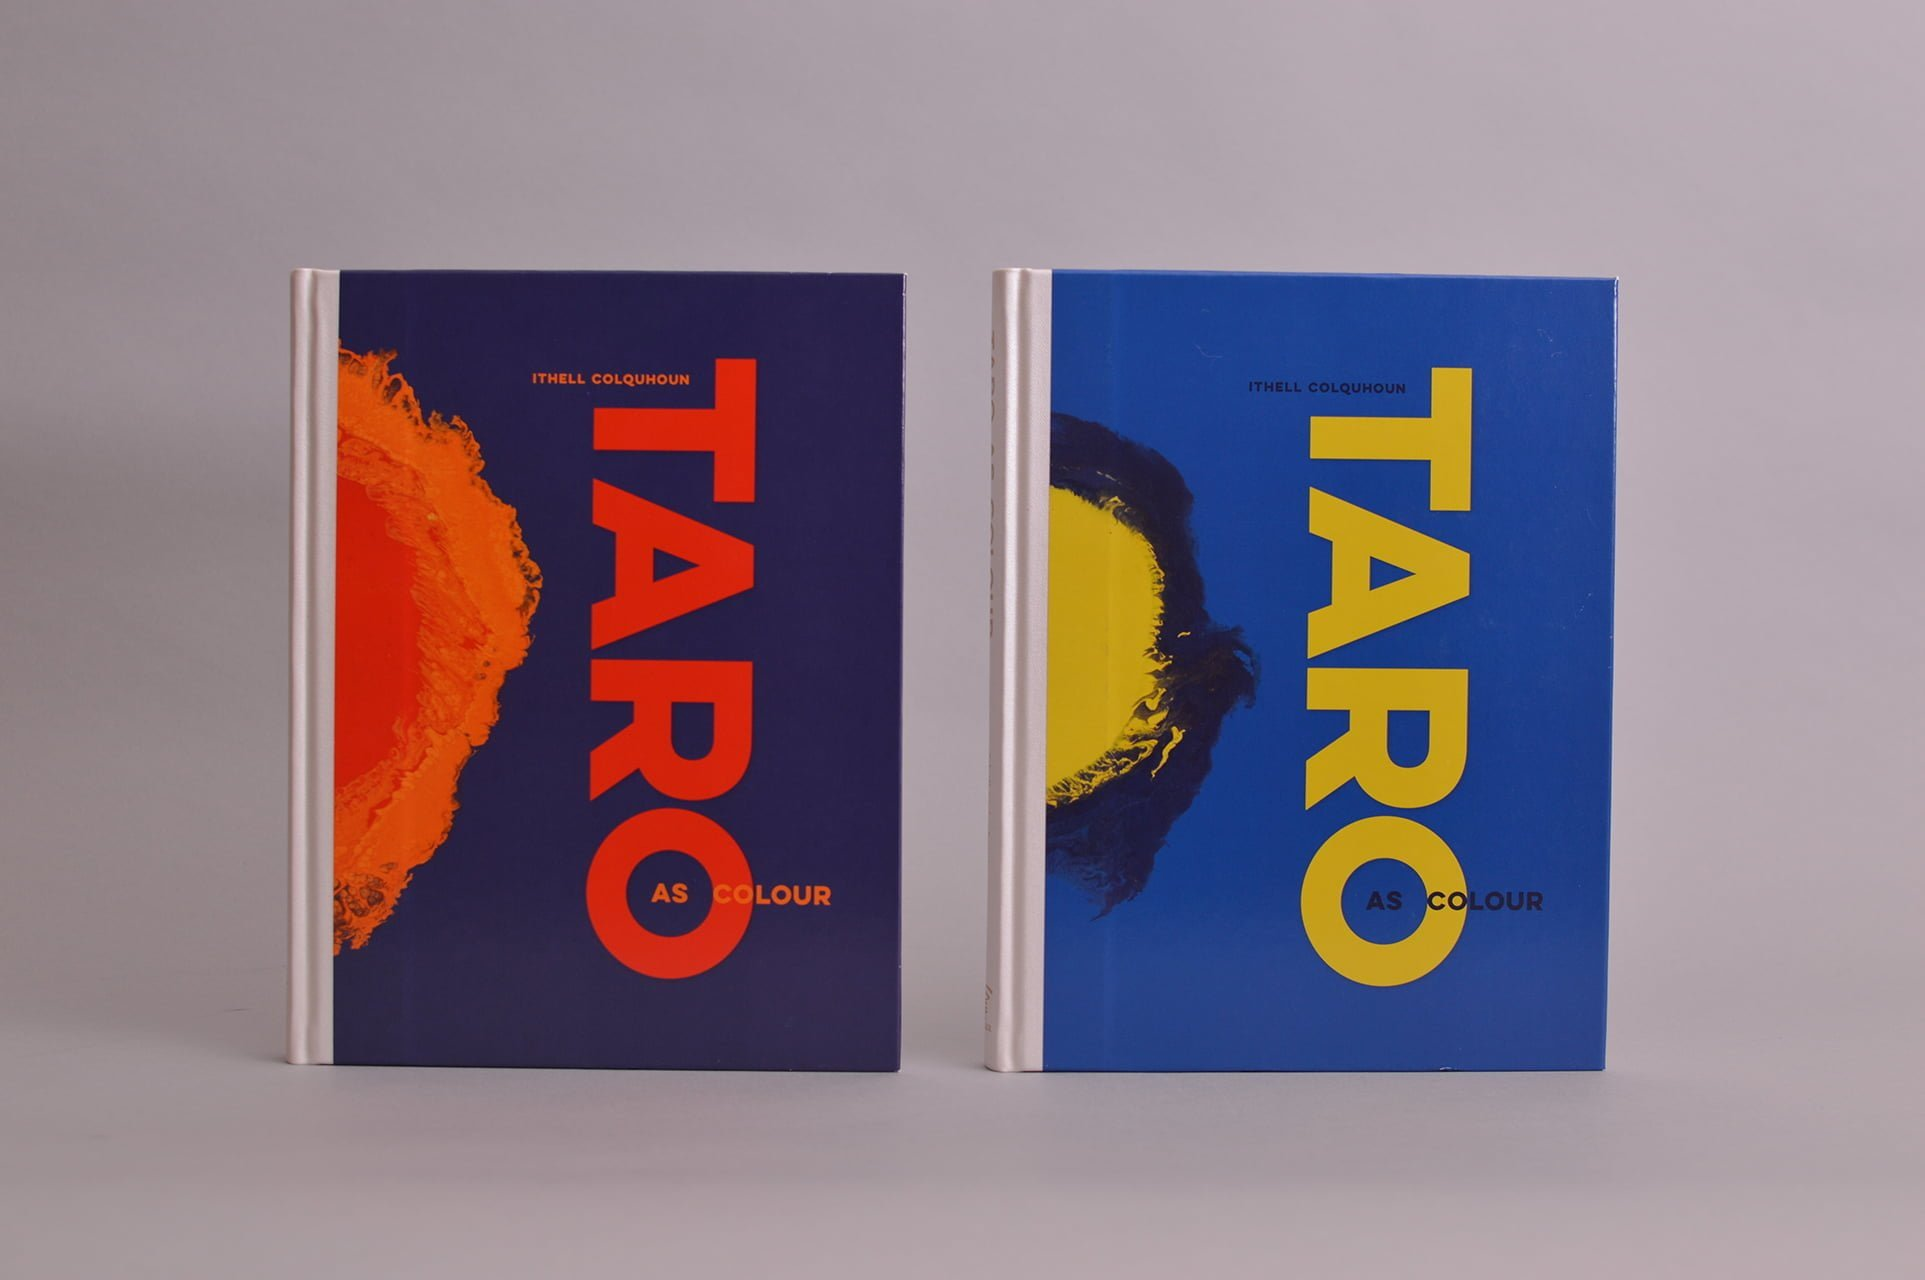 Taro As Colour - Fulgur Press